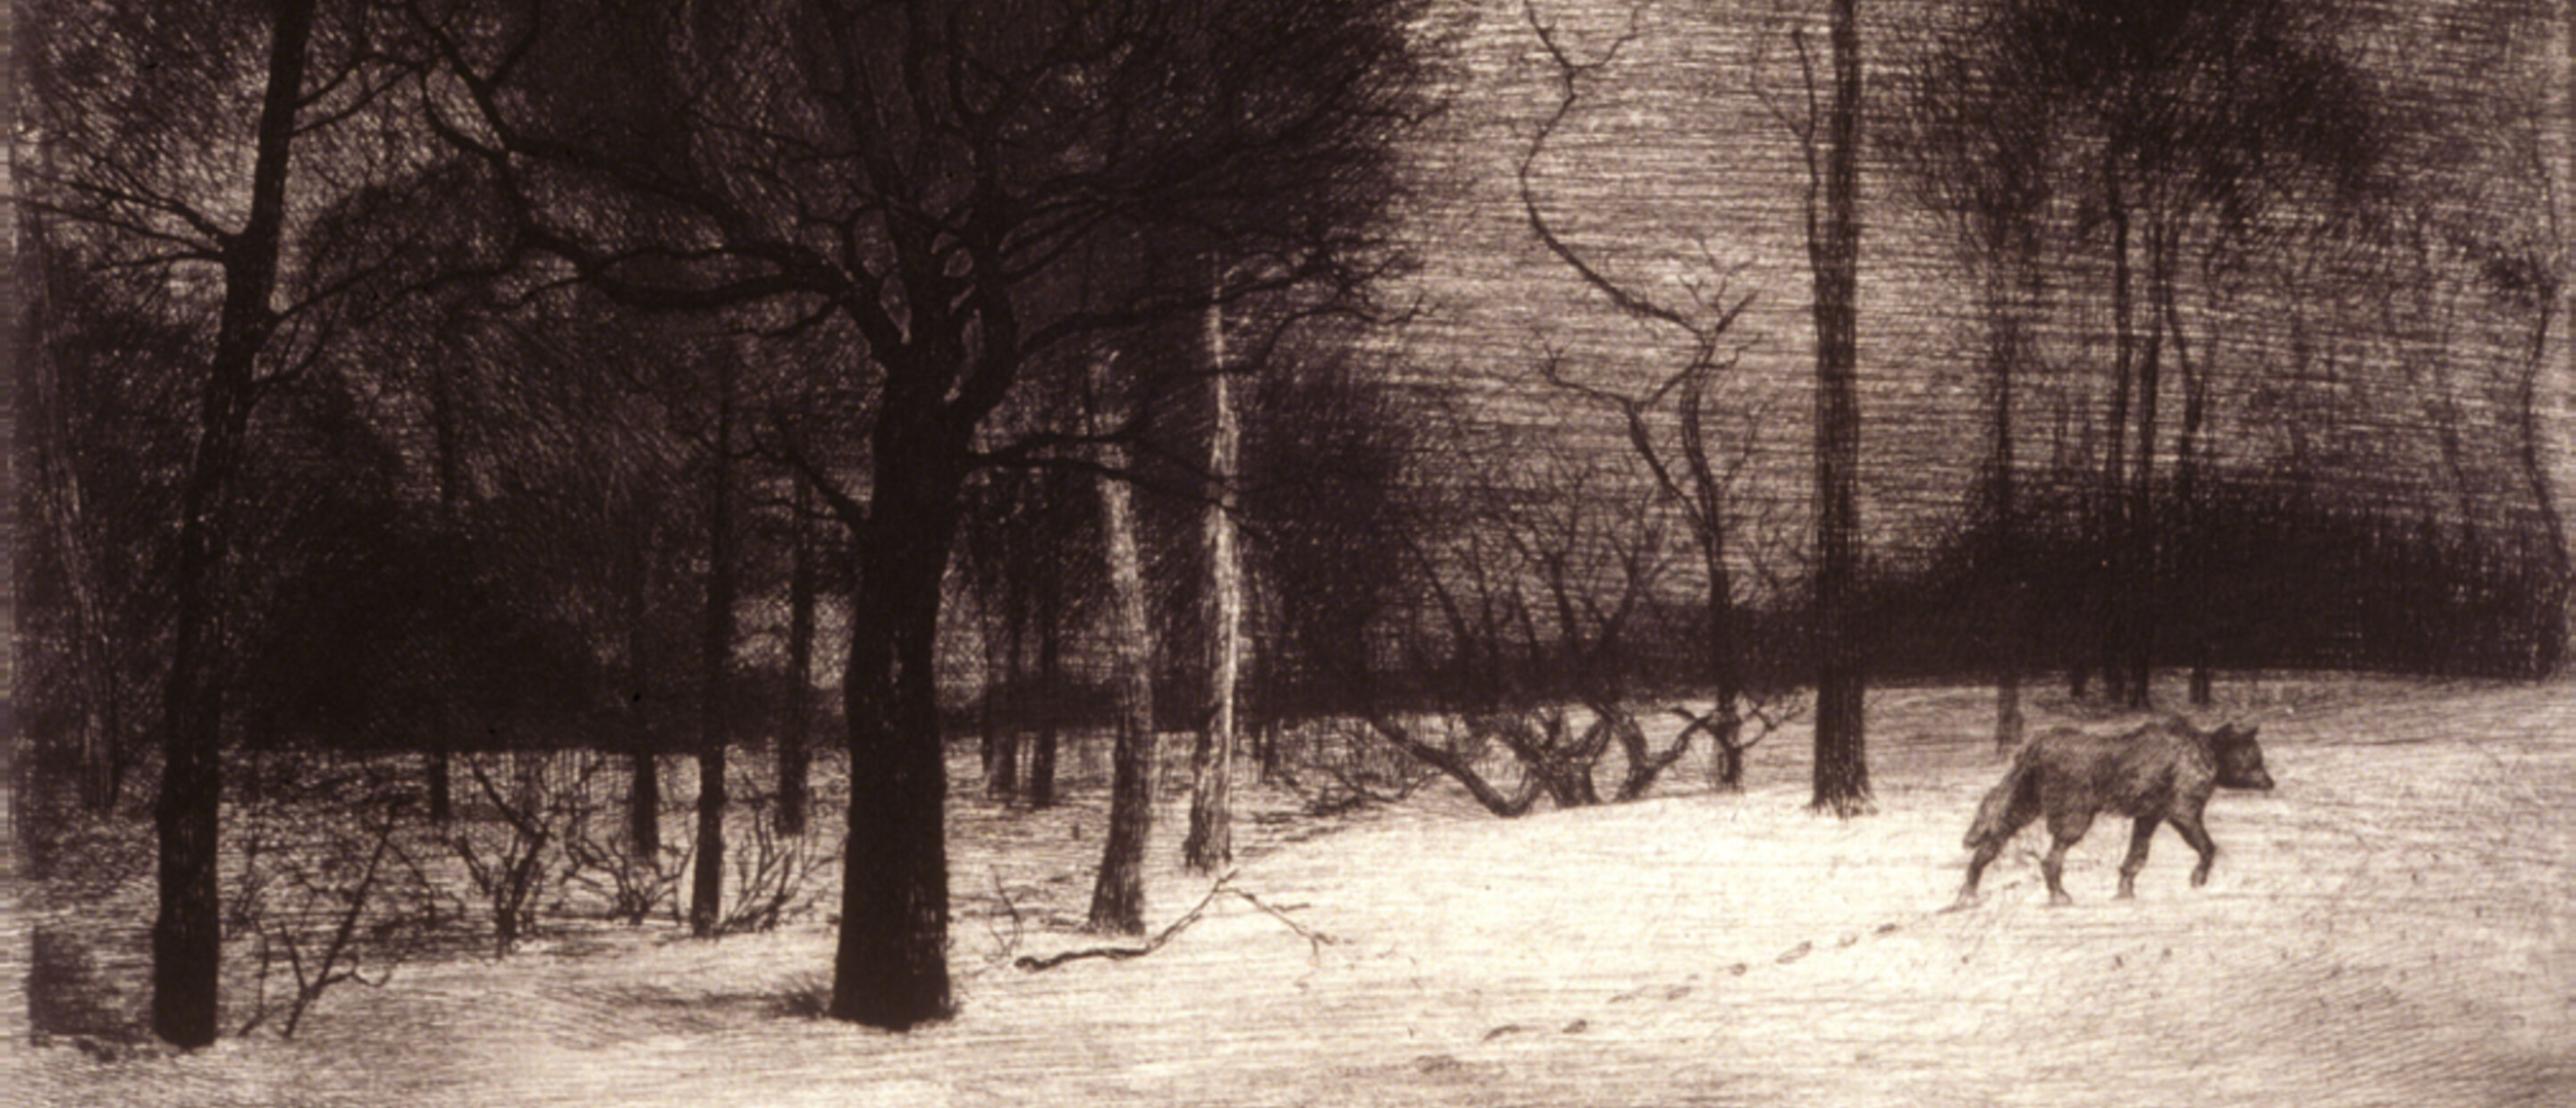 Landscape with trees and wolf walking making footprints in the snow